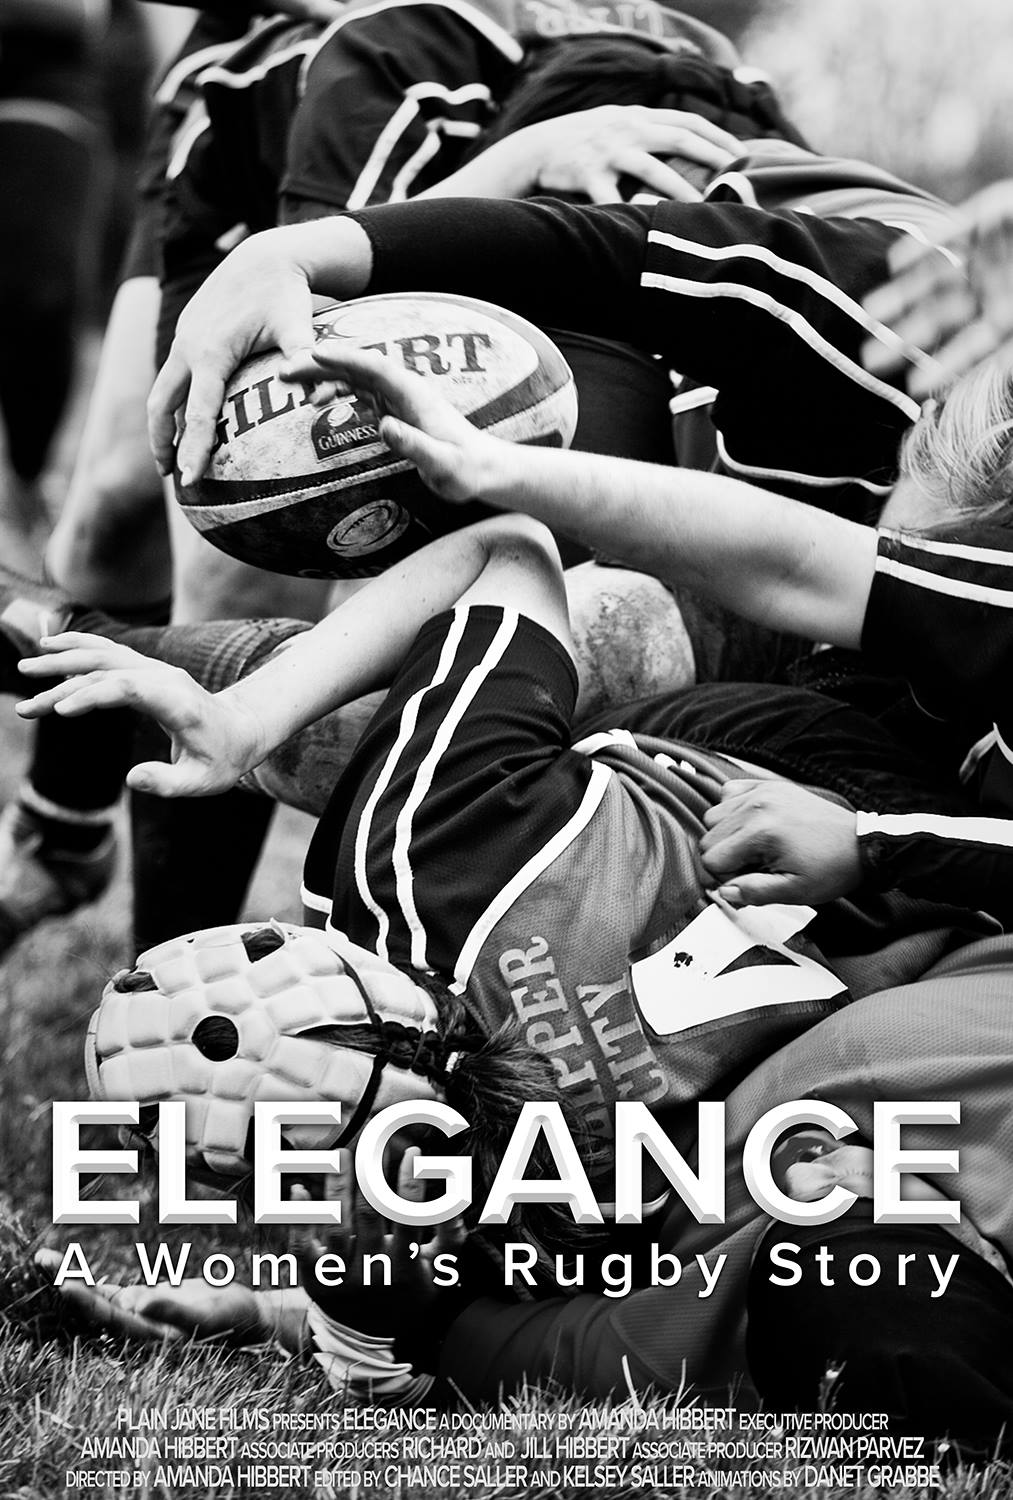 Elegance: A Women's Rugby Story